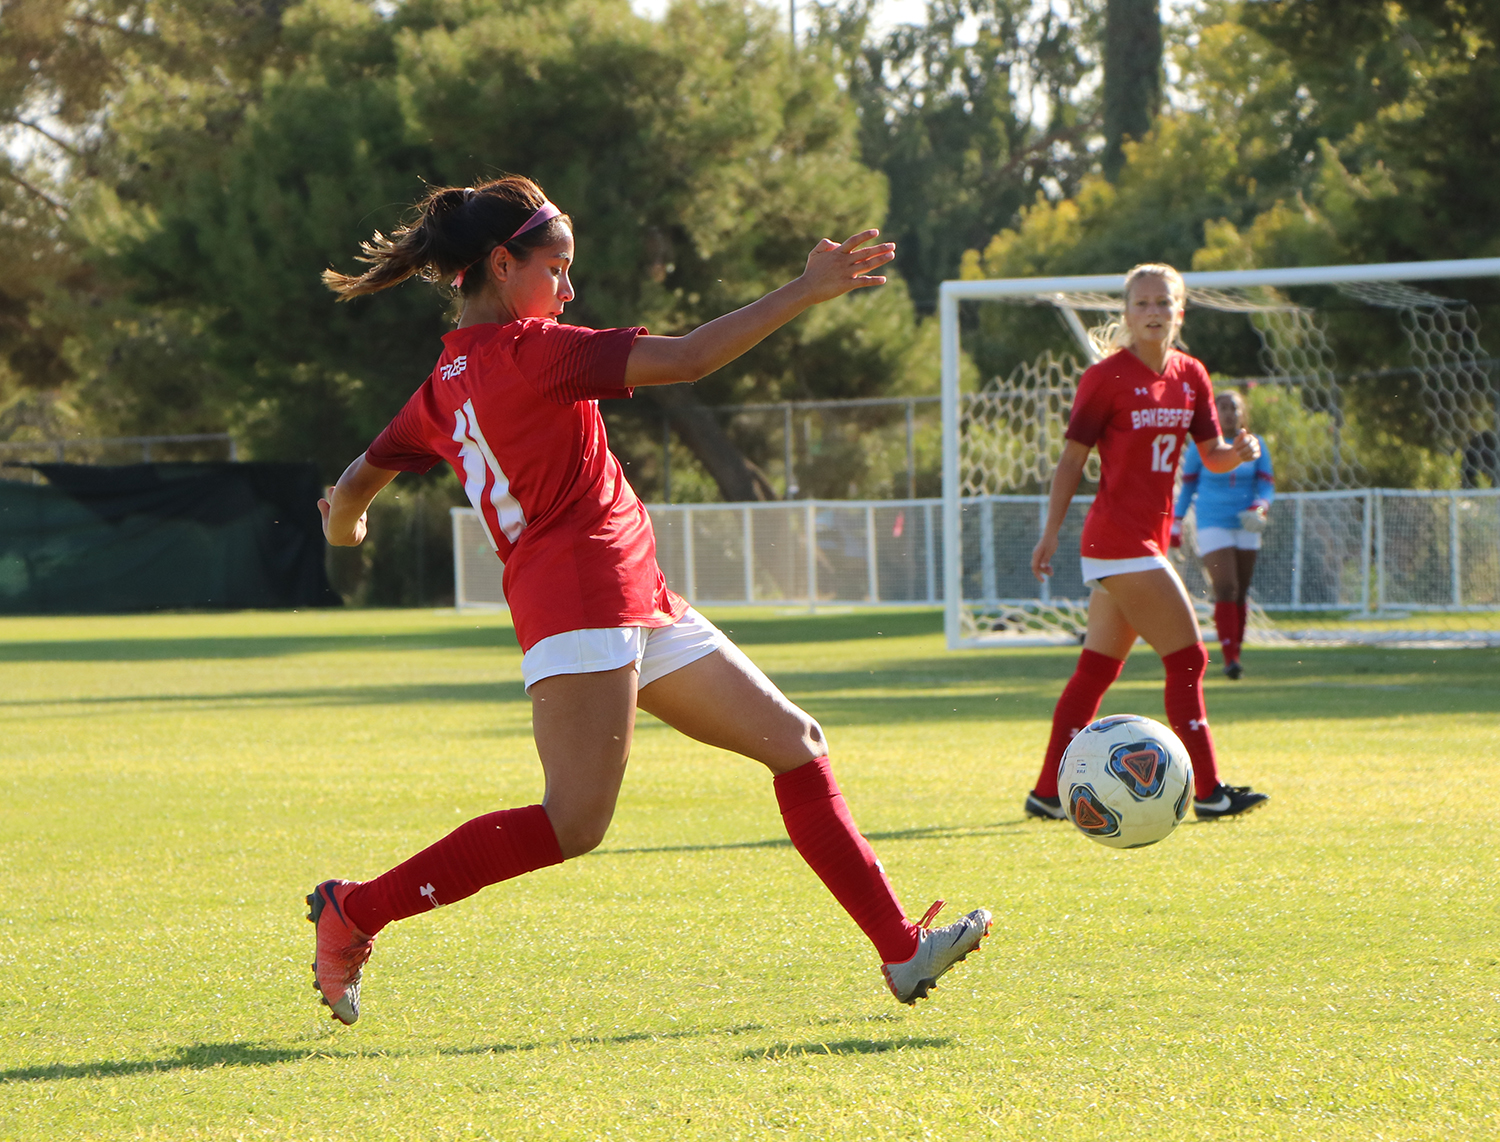 The Renegade's Alondra Tornero (11) about to passes the ball to teammate Nikolle Prather (12) during the first half of the Women's Soccer game against the Citrus College Owls at BC Soccer Field, on Oct. 8.